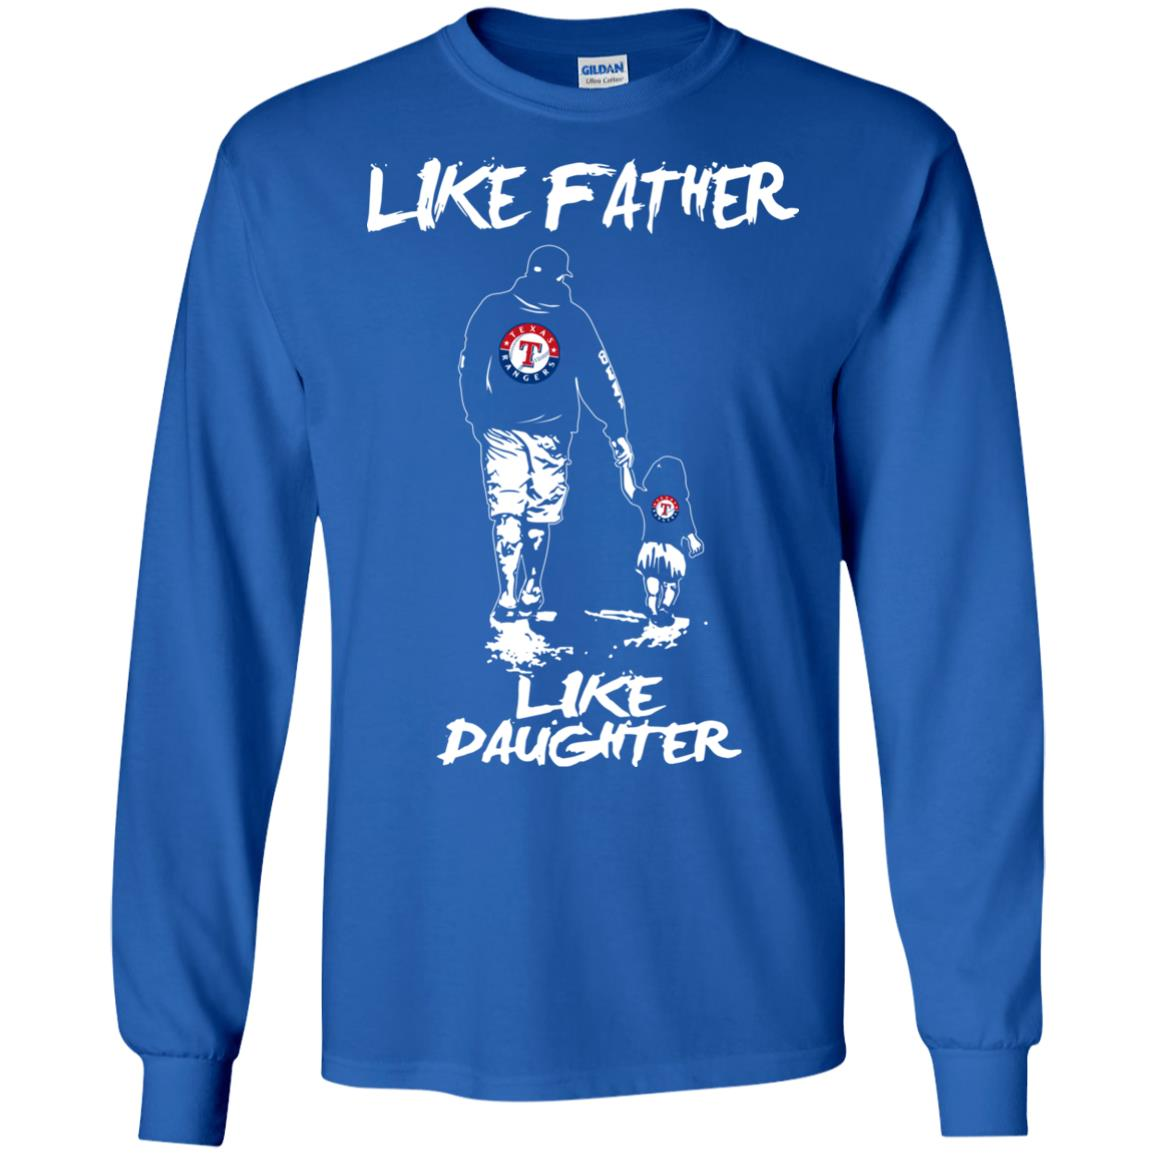 Like Father Like Daughter Texas Rangers T Shirts